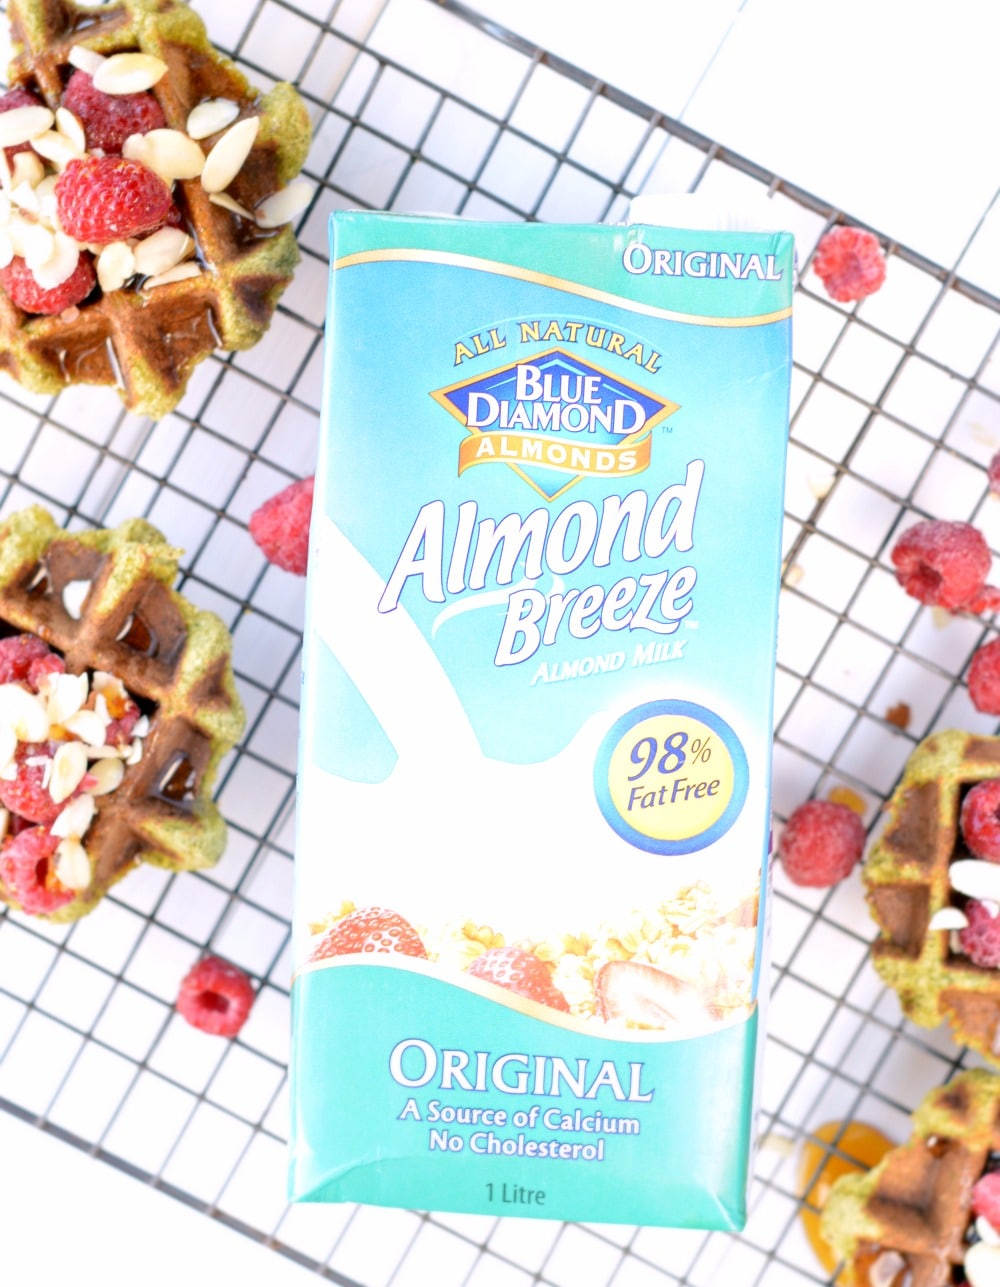 paleo waffles with almond milk from almond breeze